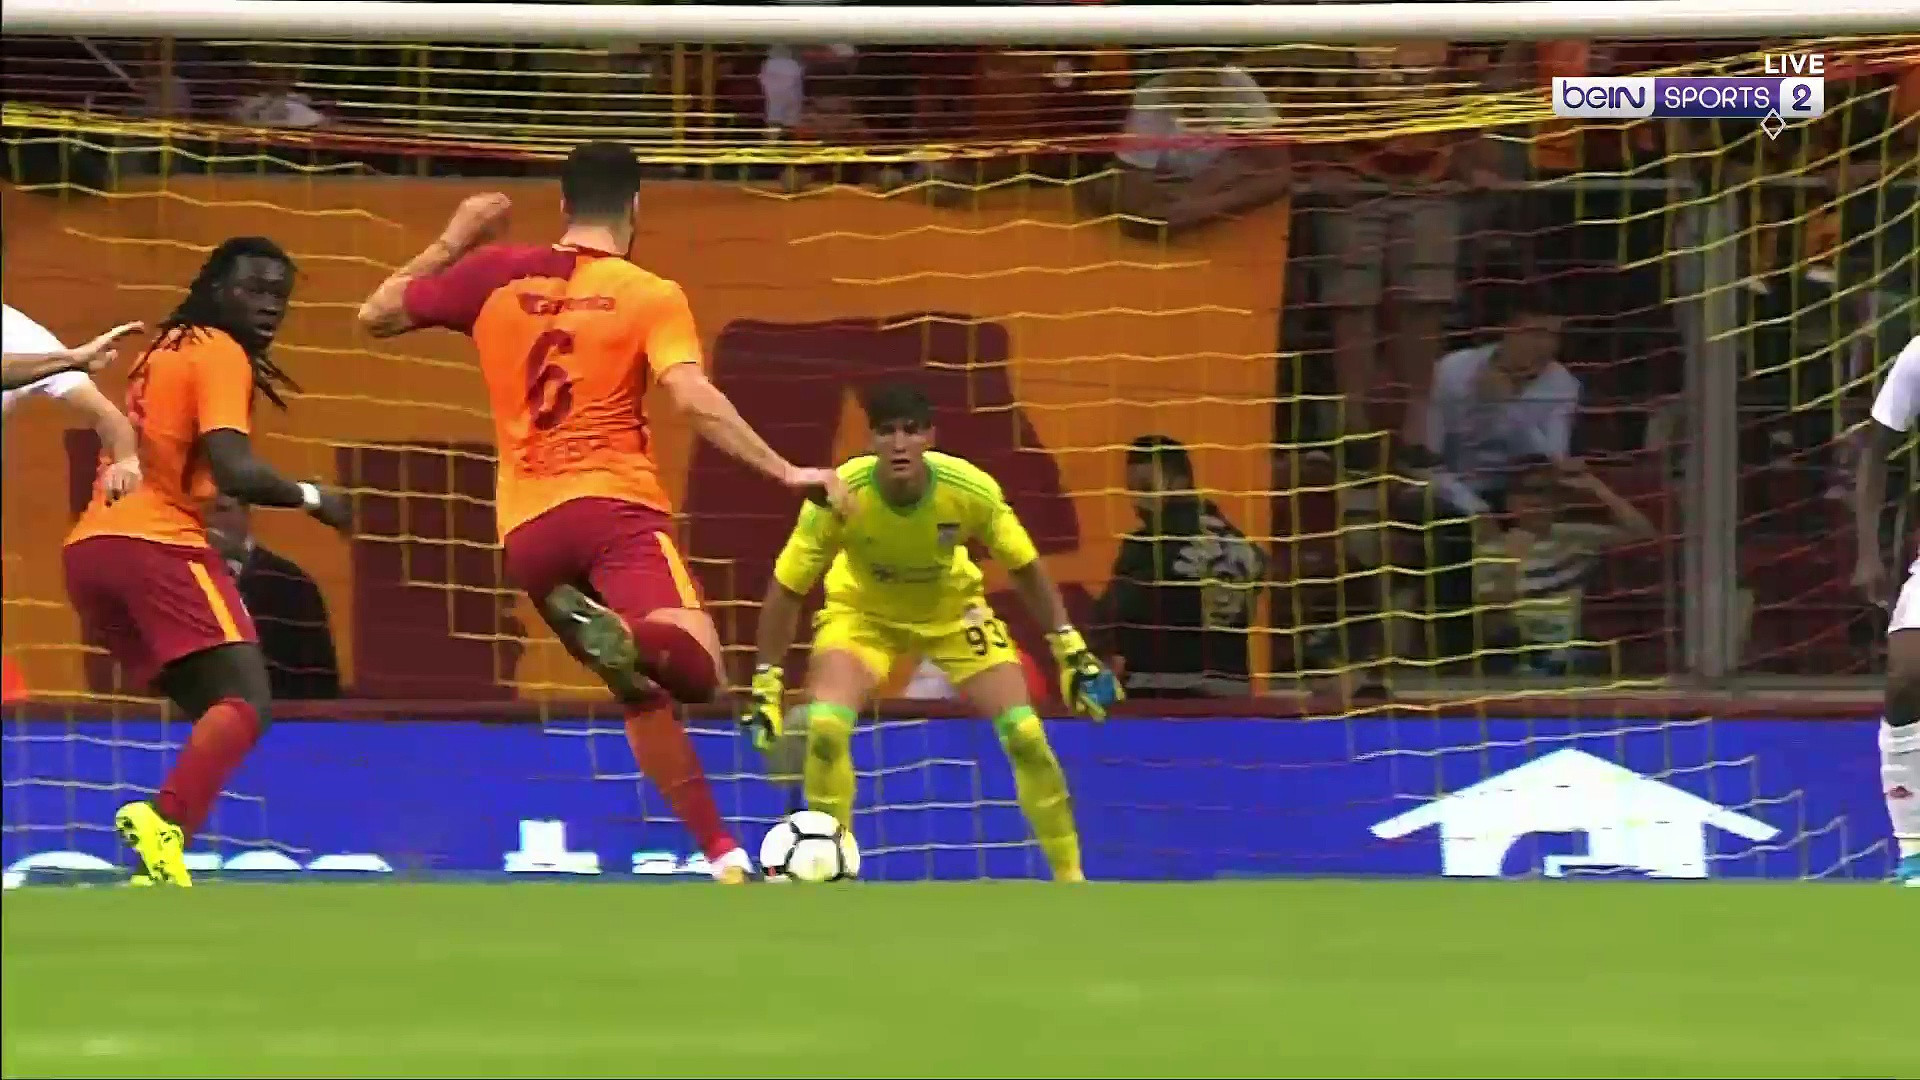 BeIN Media Group, through its partner Digiturk, has invested heavily in football in Turkey ©YouTube